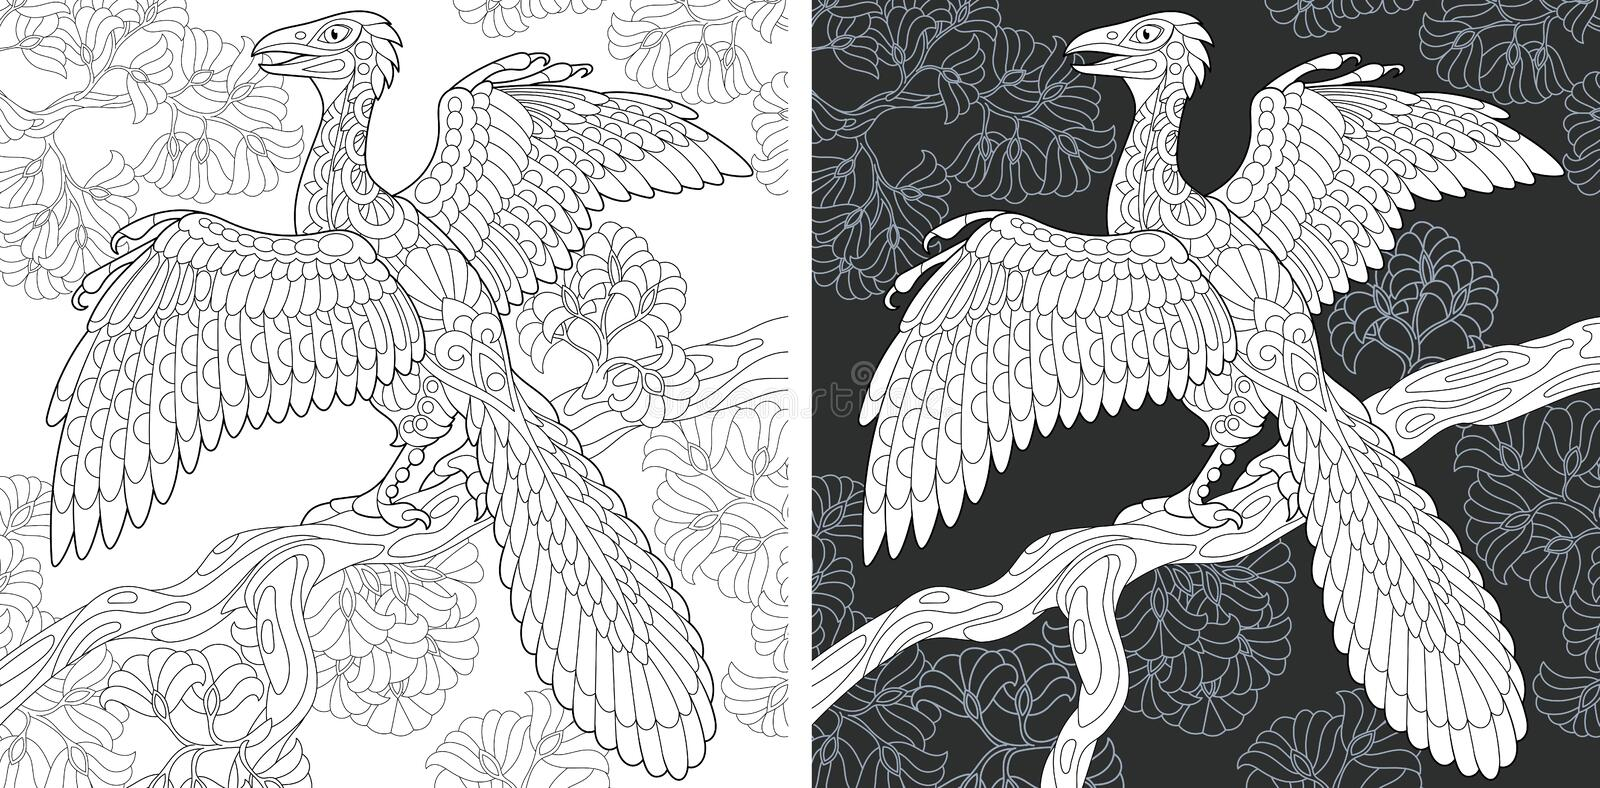 Coloring pages with Archeopteryx stock image